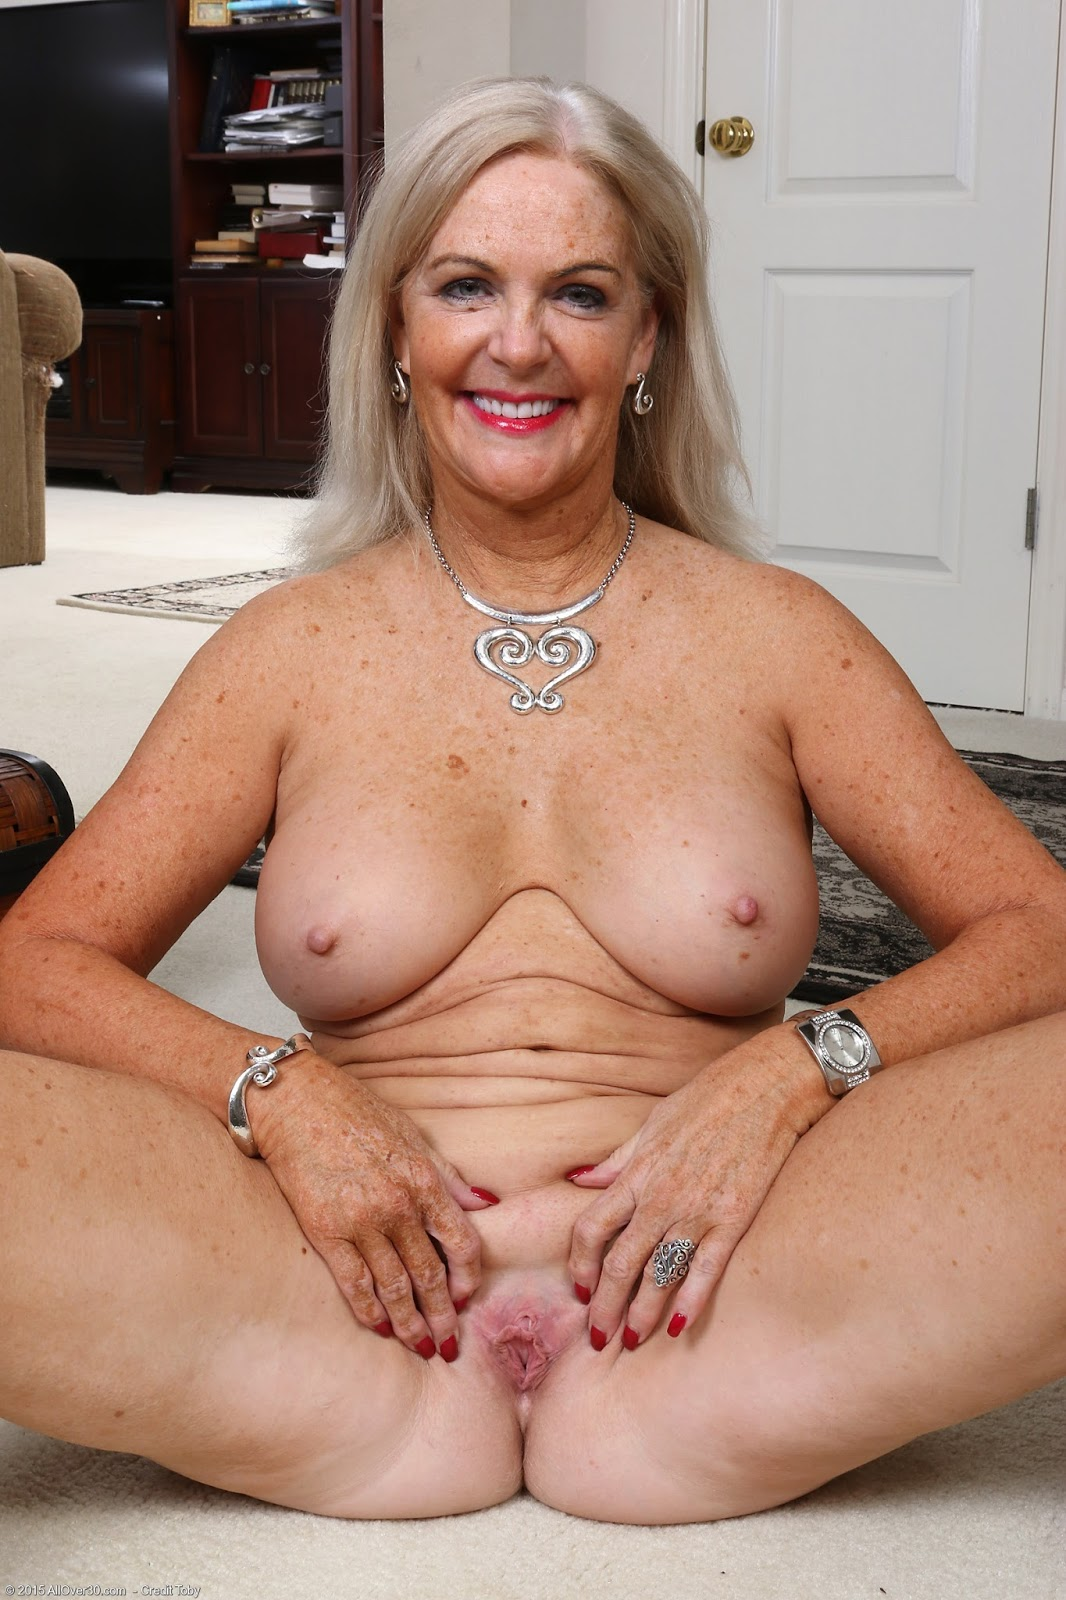 Phrase and aunt judy bbw granny porn videos sorry